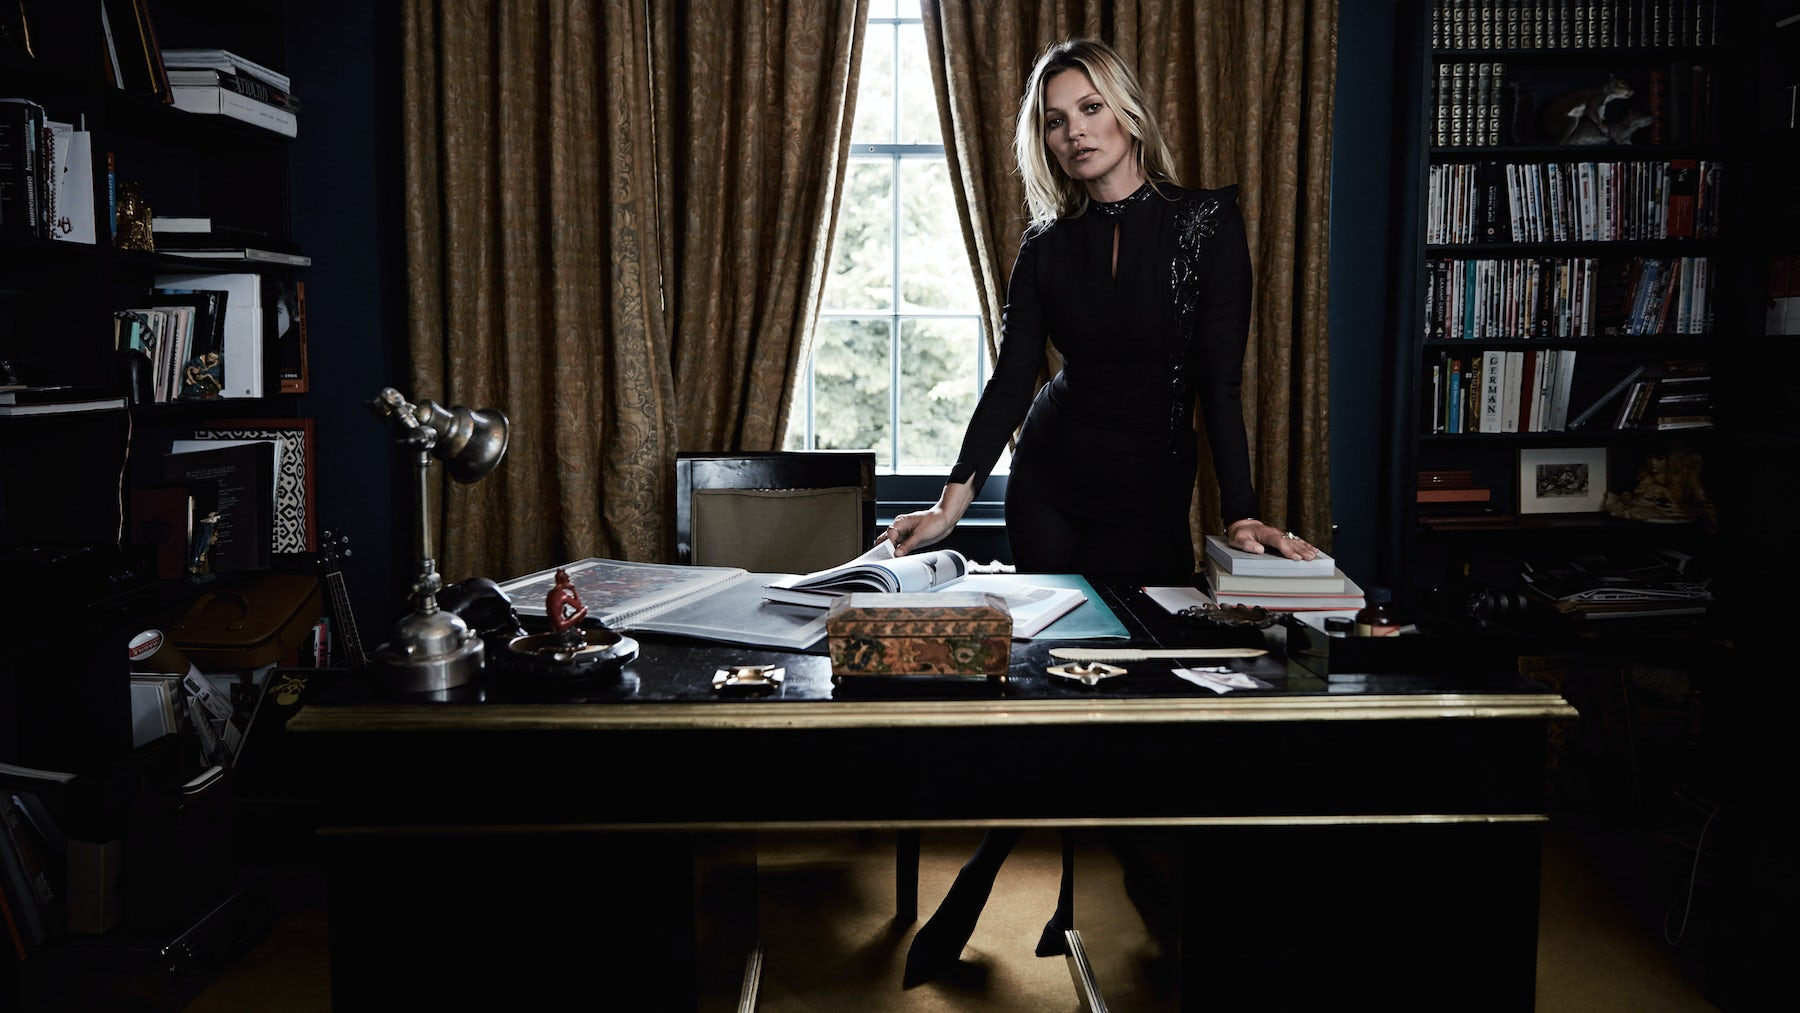 Kate Moss Inc: How the World-Famous Supermodel Is Building a Business of Her Own